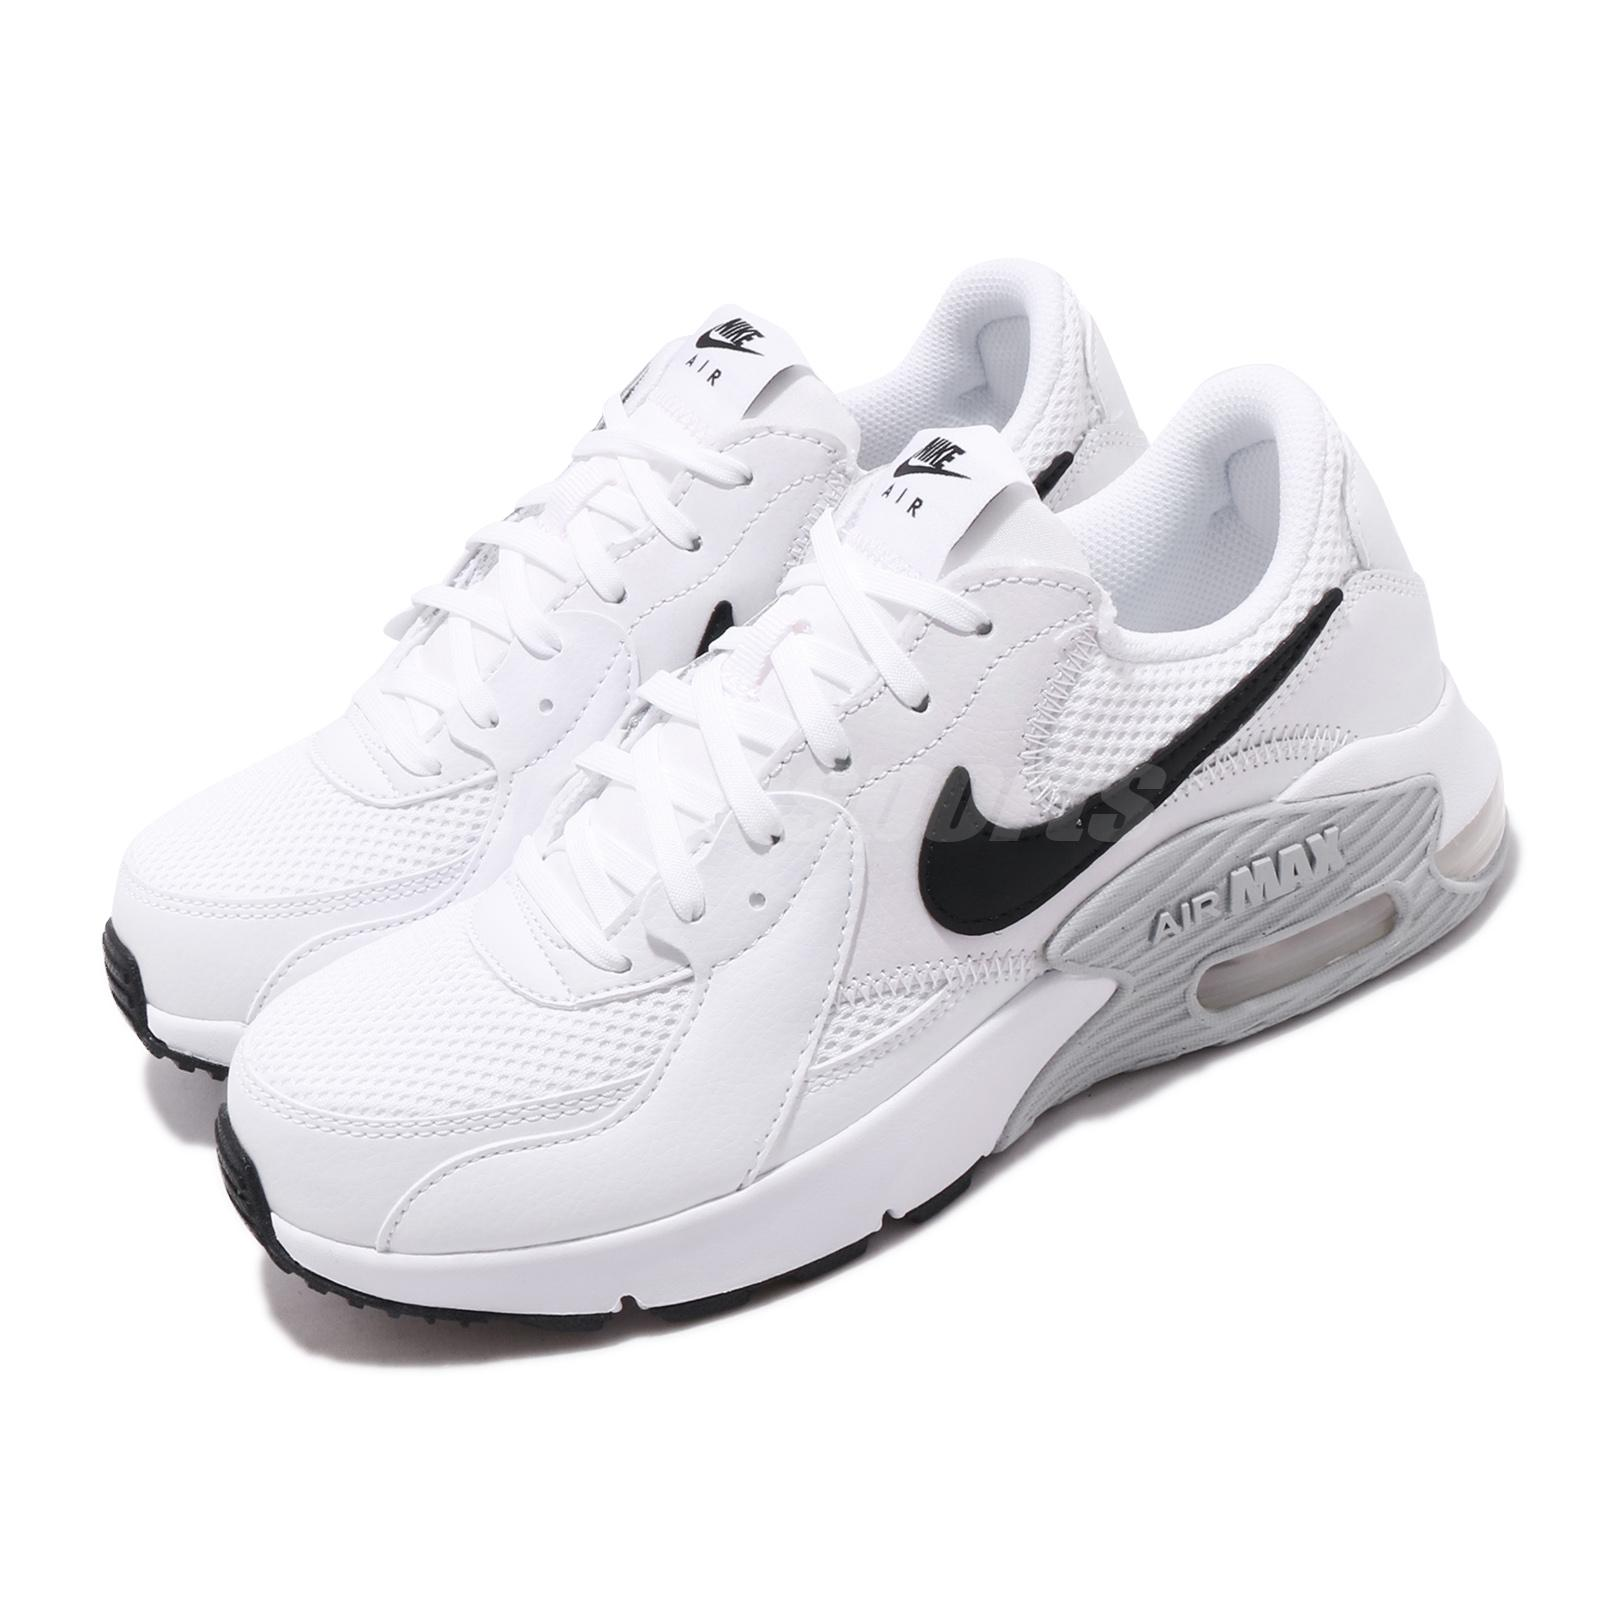 Details about Nike Wmns Air Max Excee White Black Grey Women Running Shoes  Sneakers CD5432-101